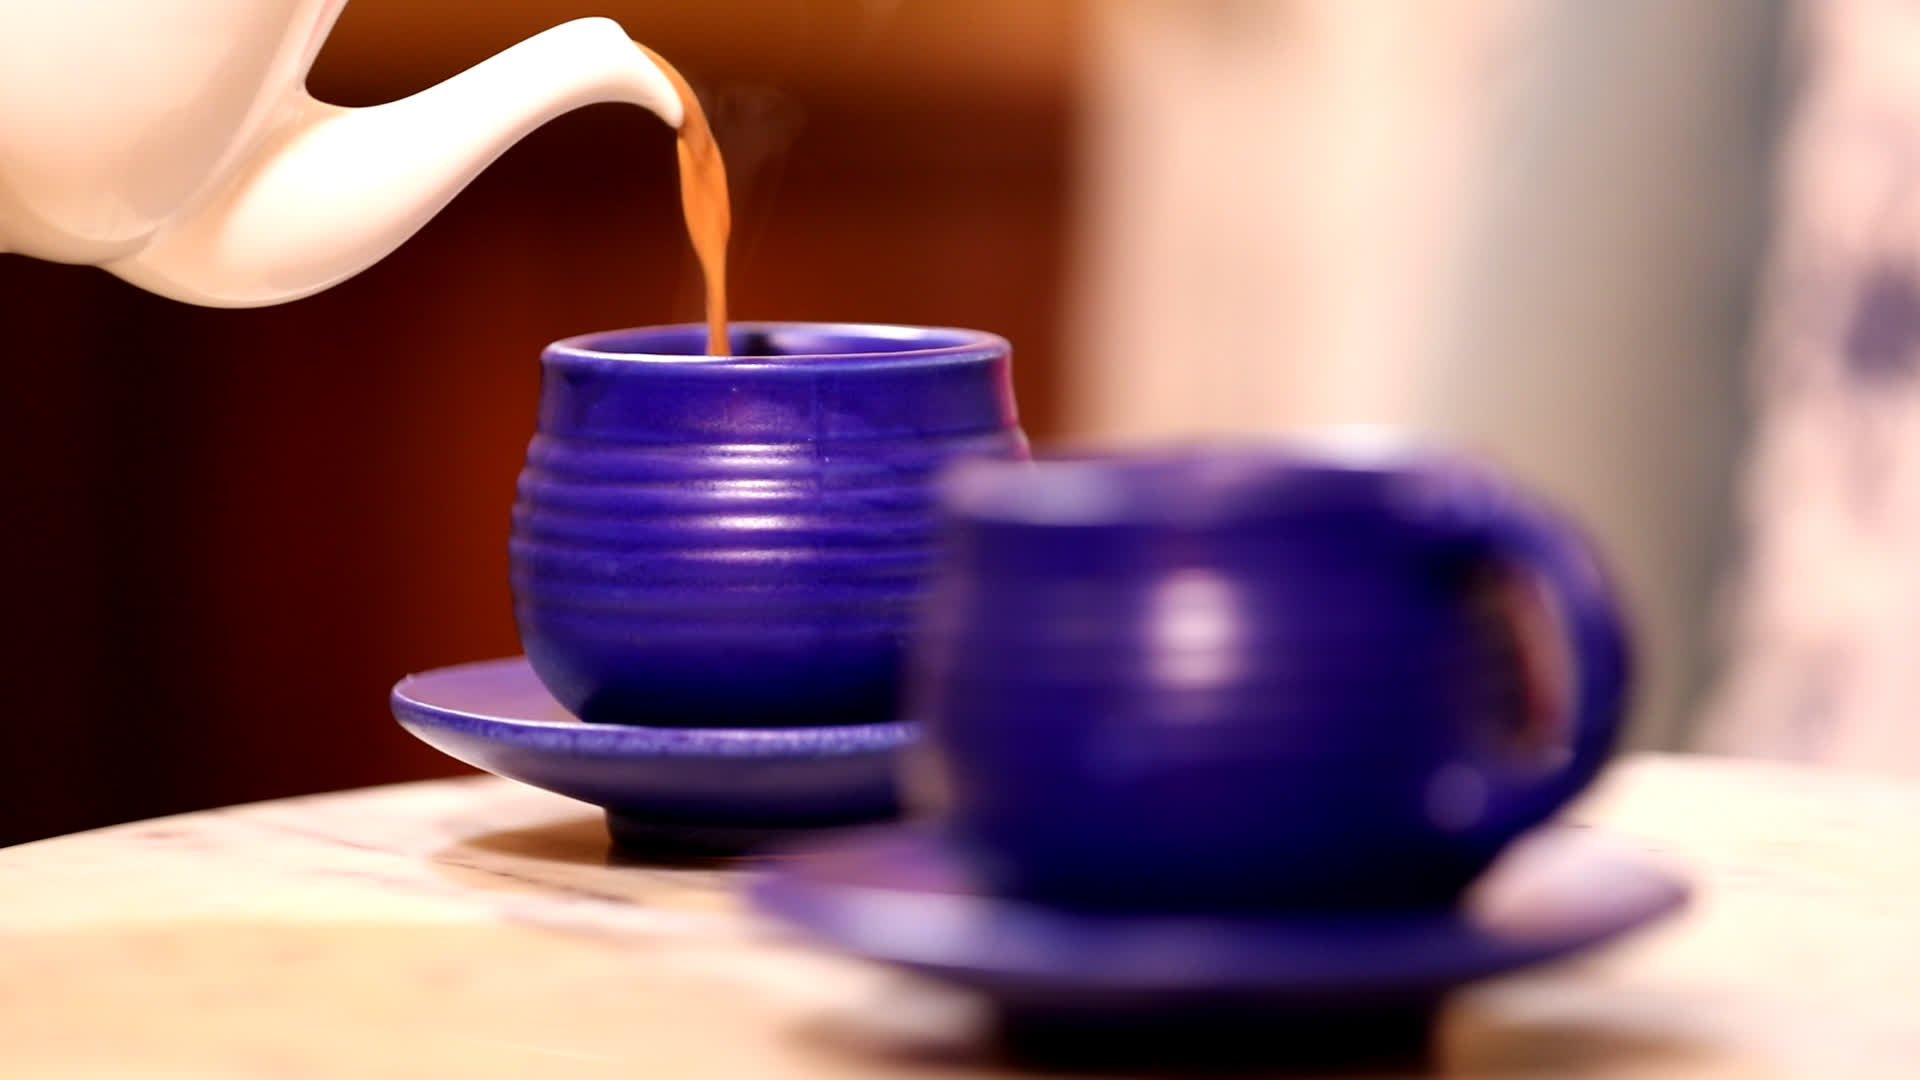 Chai Pe Charcha – The Tale of Indian Tea | Tales & Trails